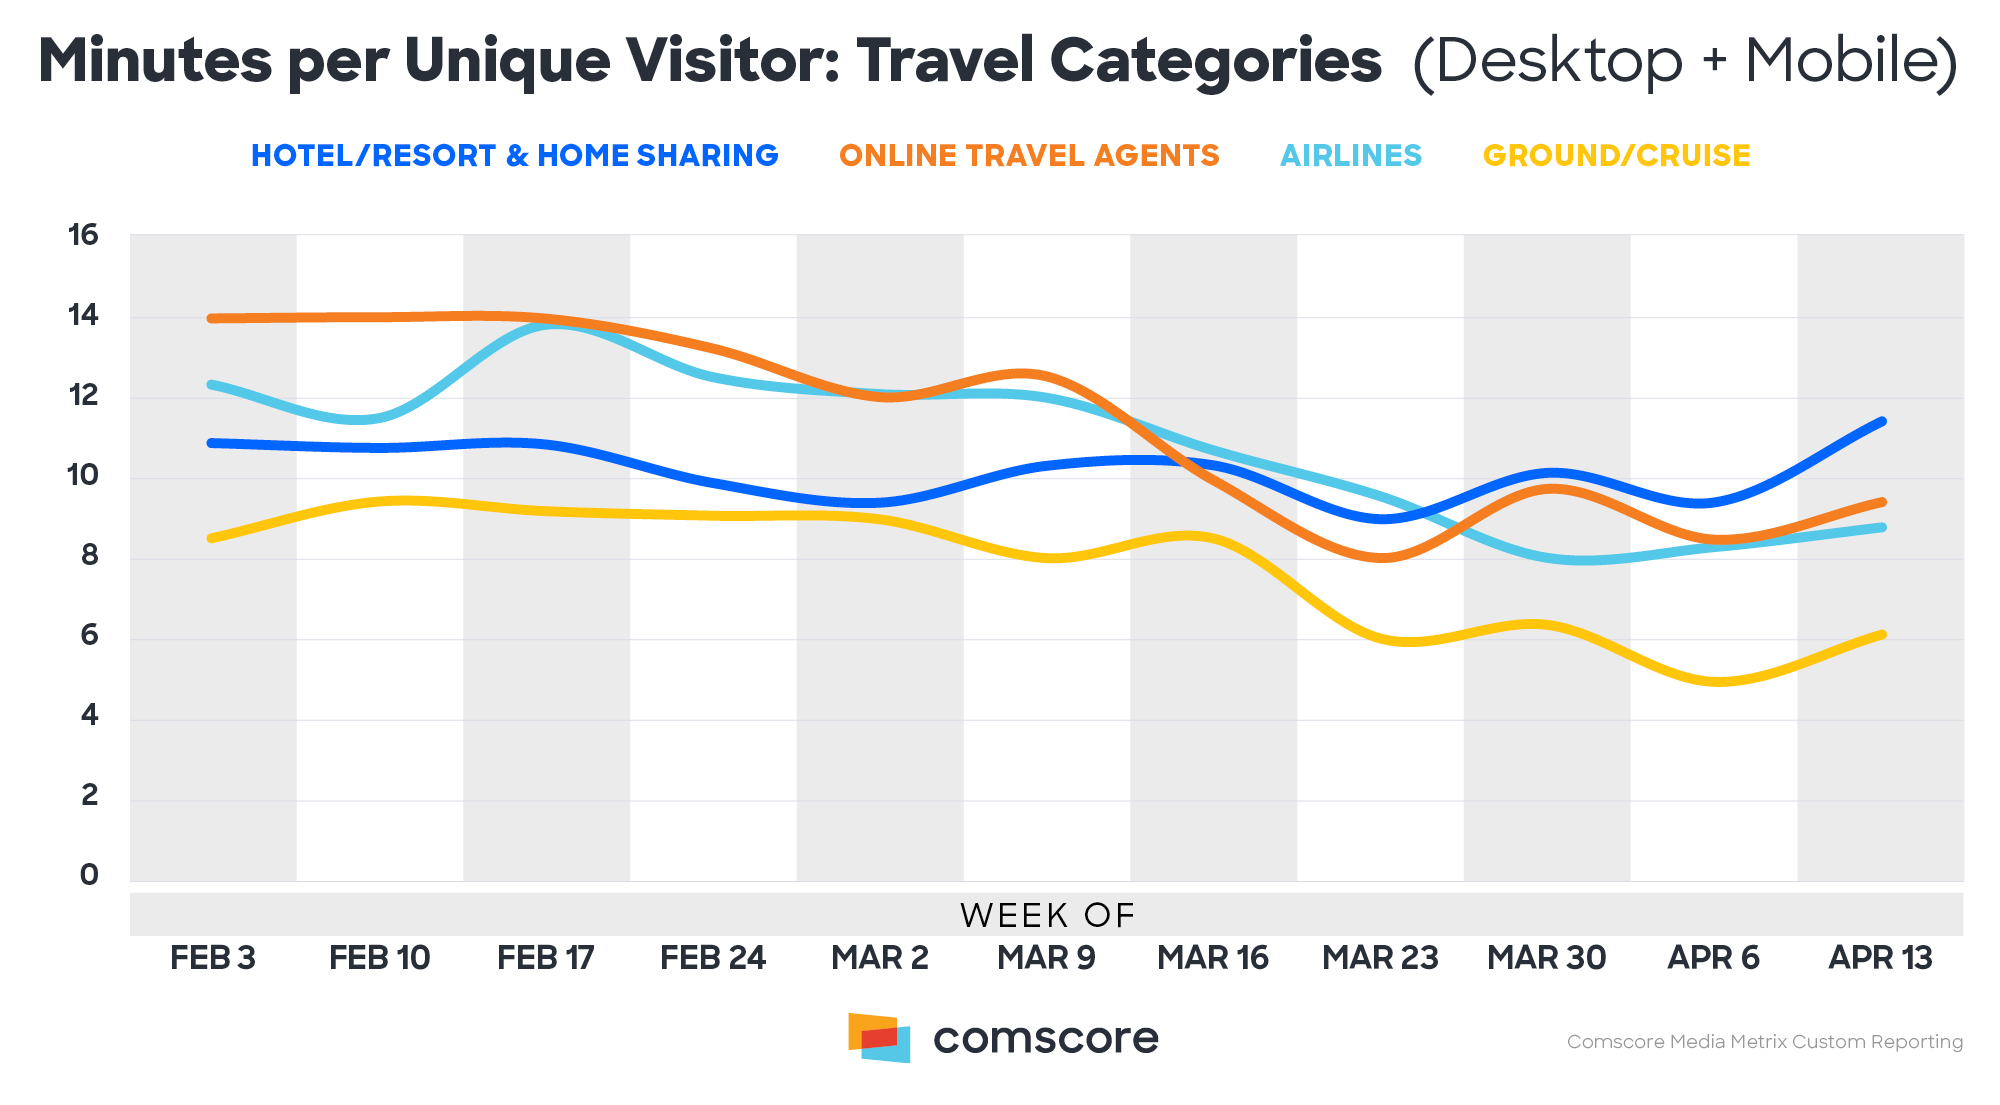 Minutes Per Unique Visitor Travel Categories